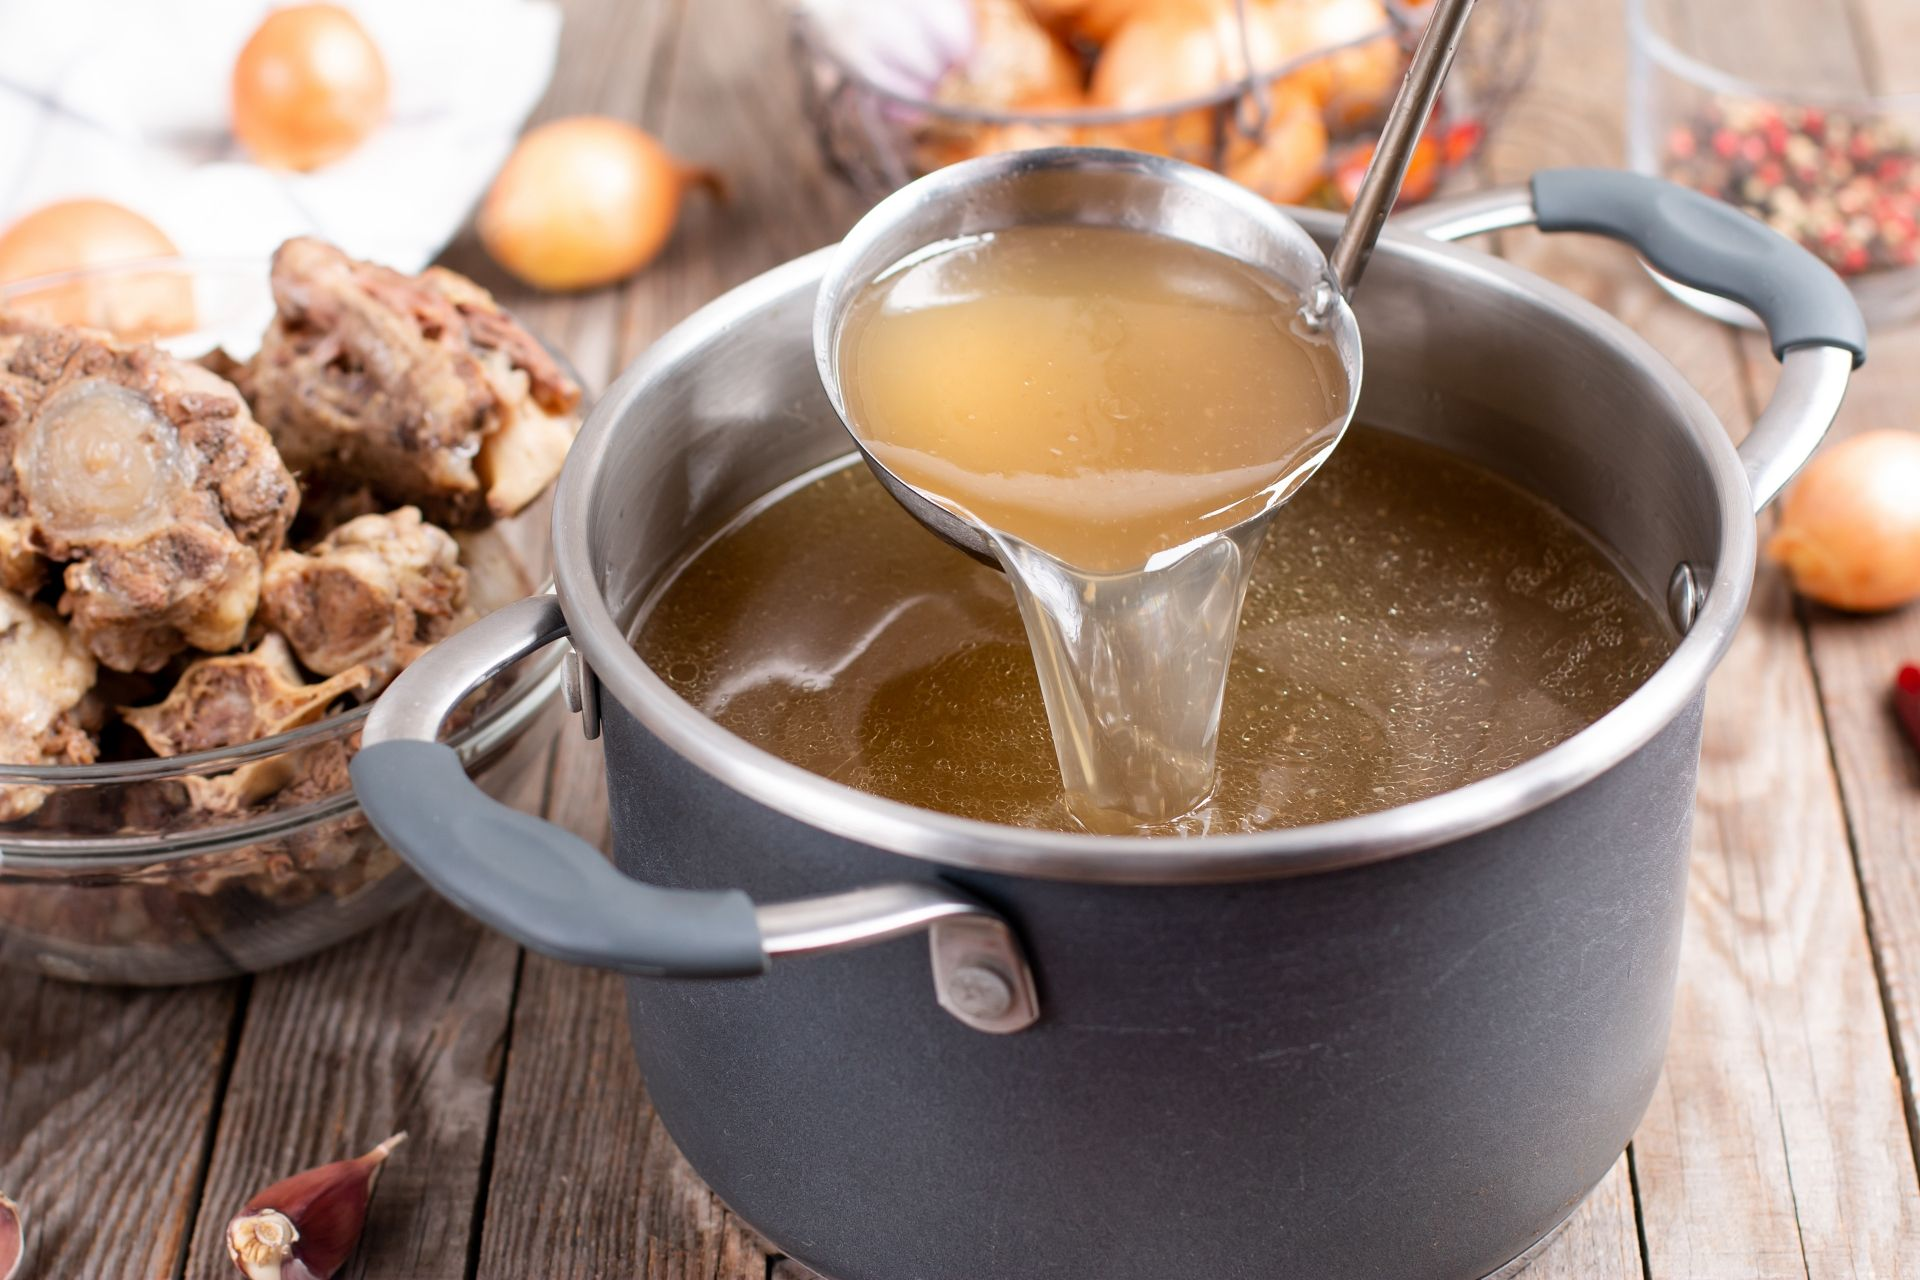 Food Trends: Why Are People Obsessed With Bone Broth? | Tatler Philippines